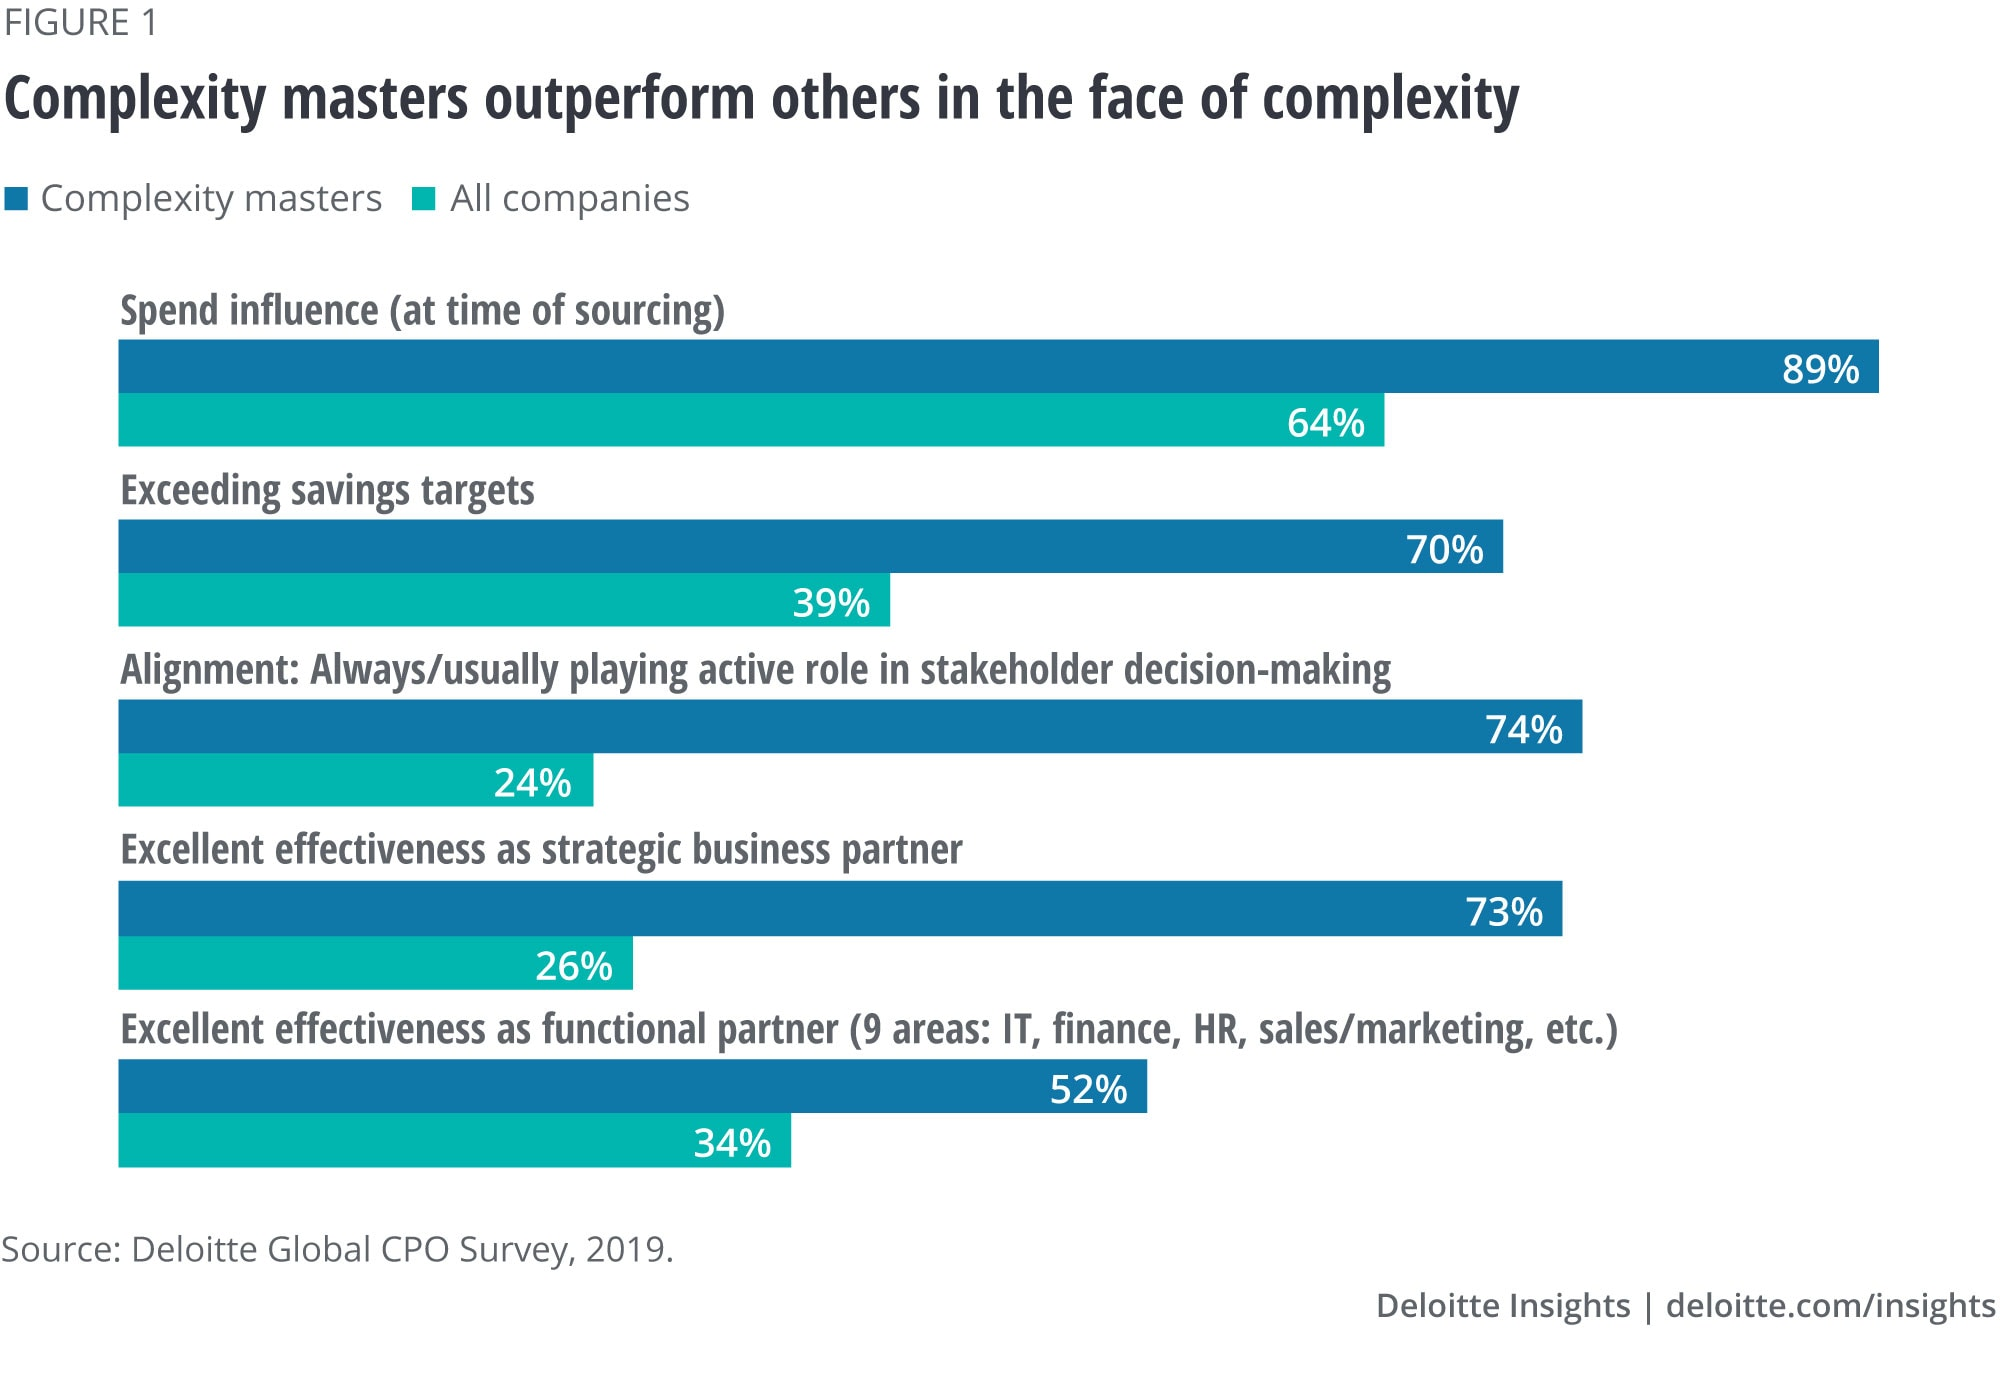 Complexity masters outperform others in the face of complexity